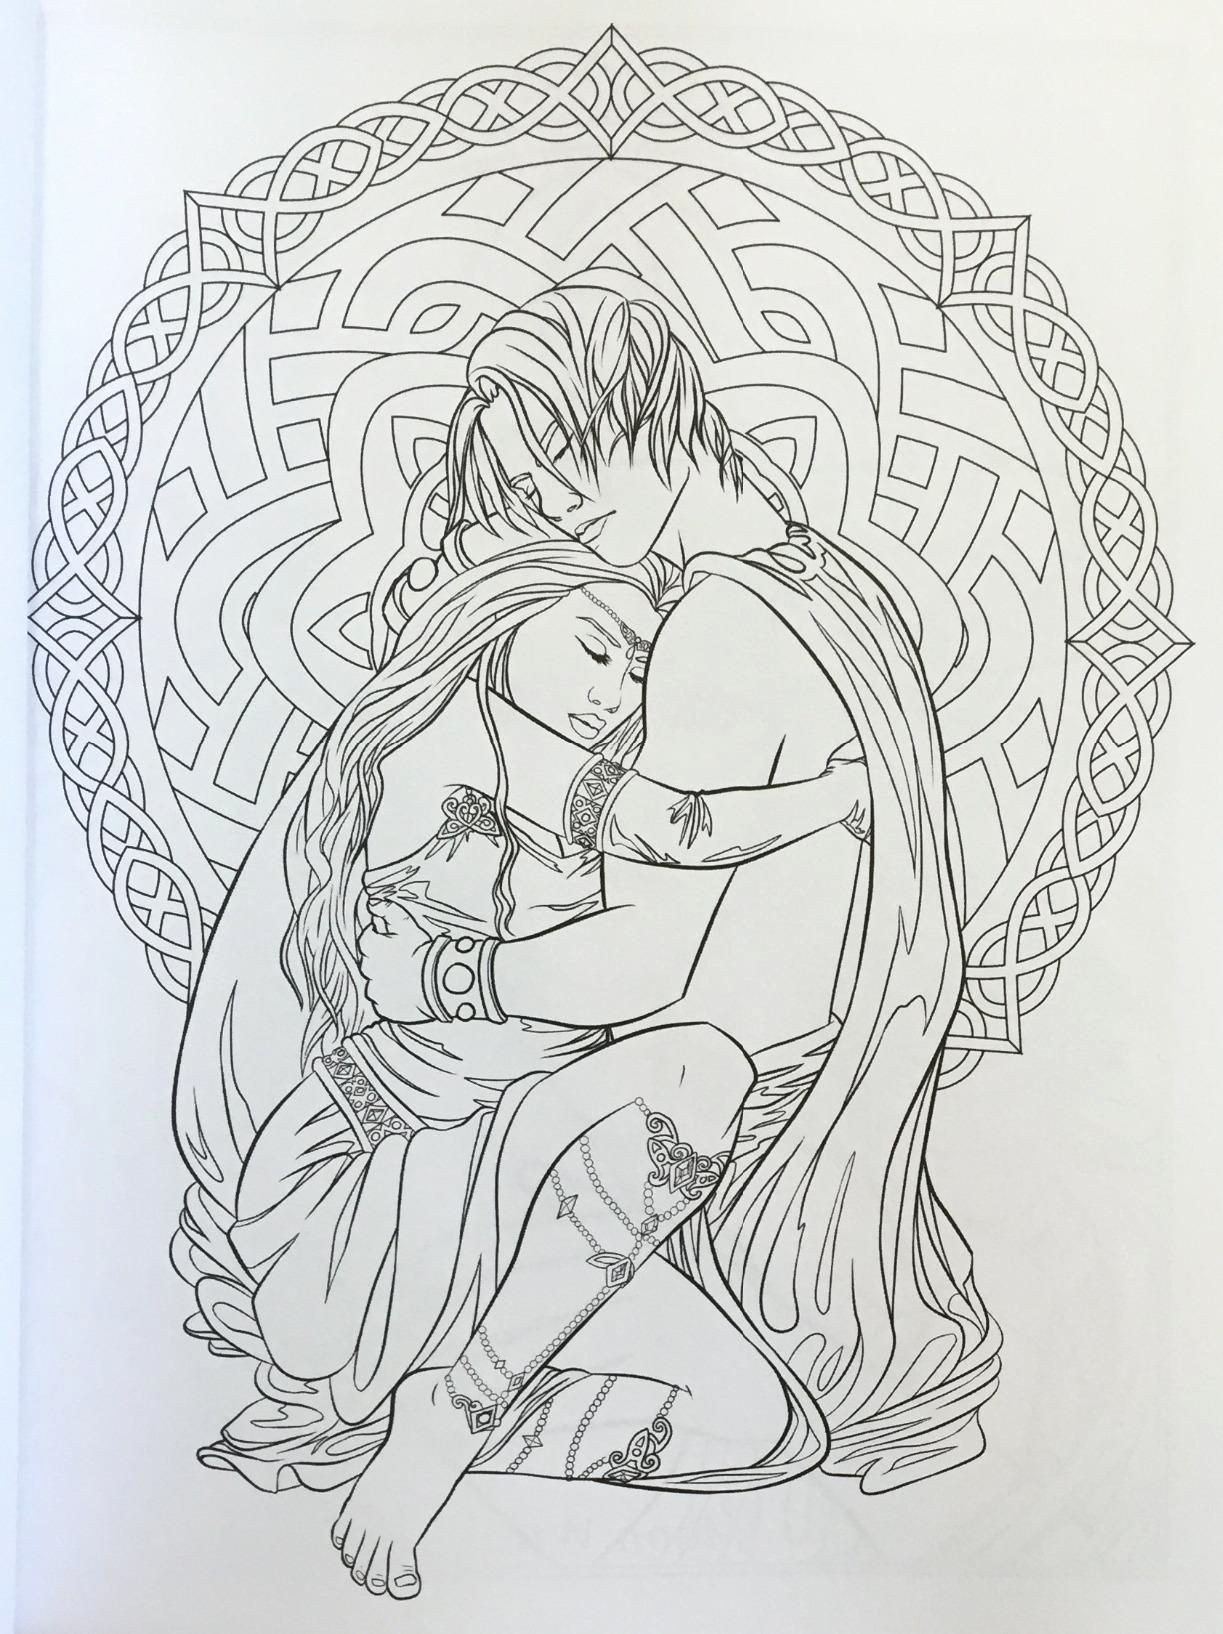 Fantasy Coloring Pages Gothic Coloring Book Best Of Image The Coloring Book For Goths